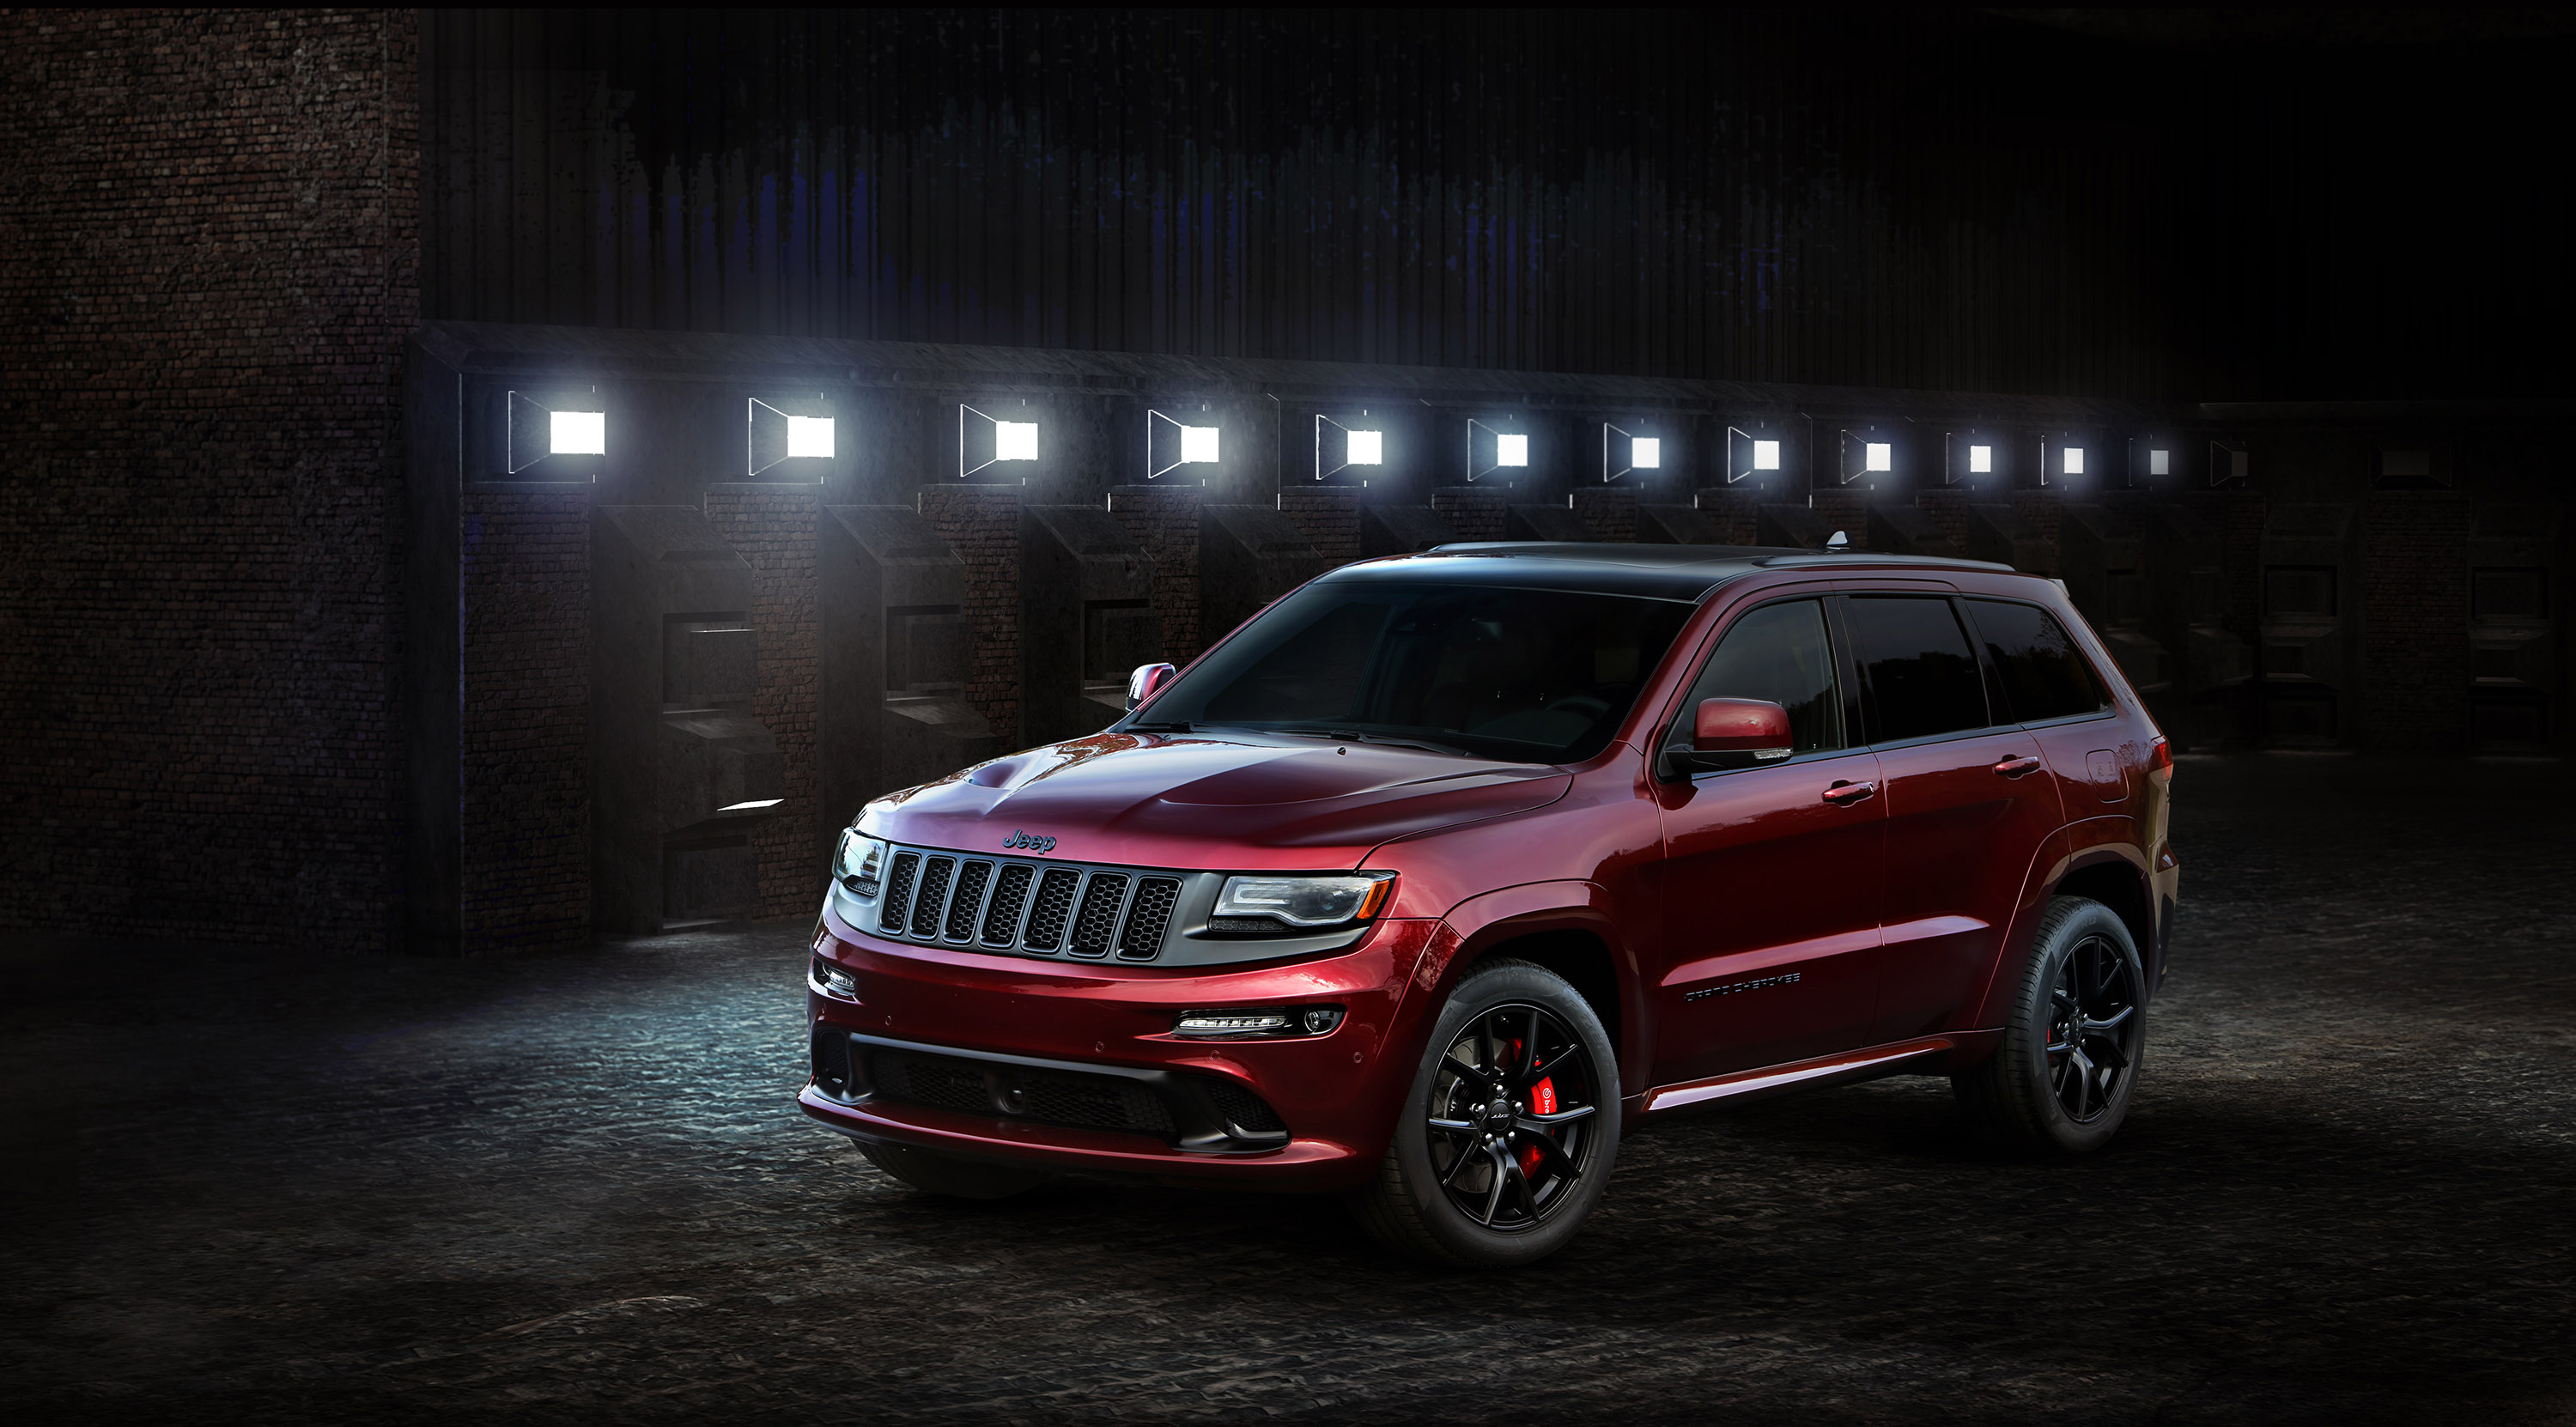 Jeep Grand Cherokee Off Road Bumper >> Jeep Wrangler Backcountry & Grand Cherokee SRT Night are Main Stars in L.A.